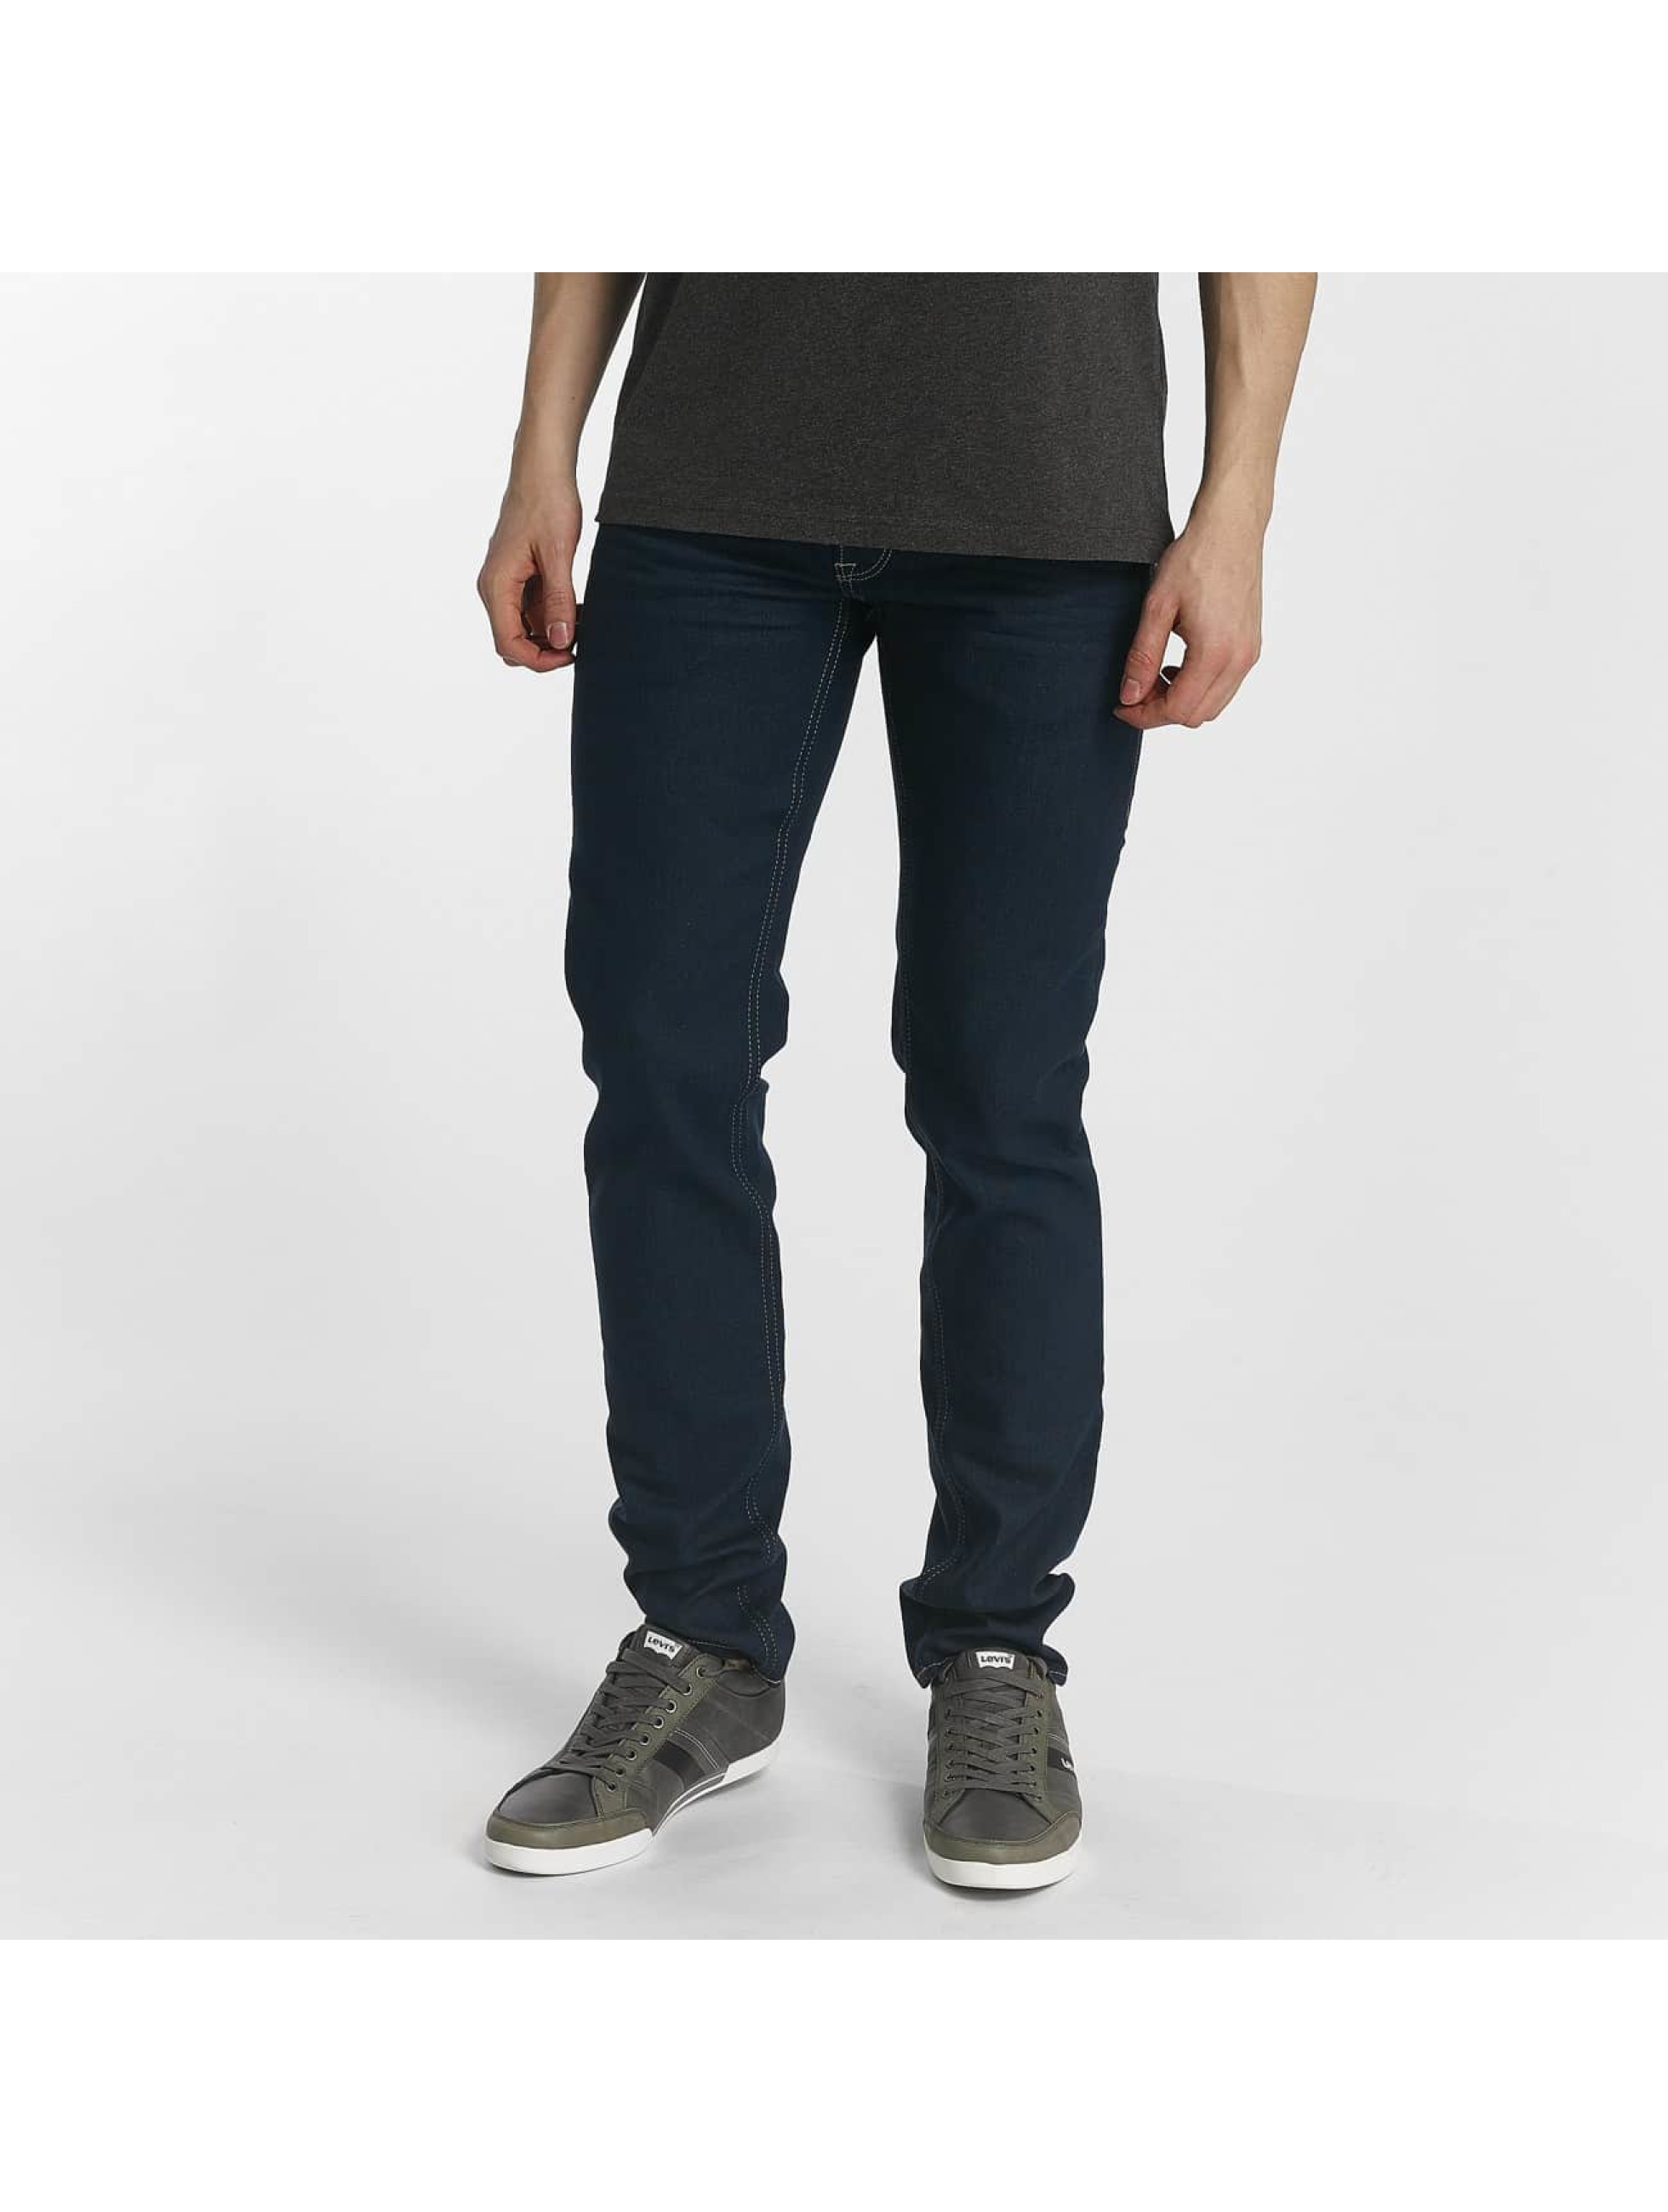 Le Temps Des Cerises Straight Fit Jeans 700/11 Recycled blue